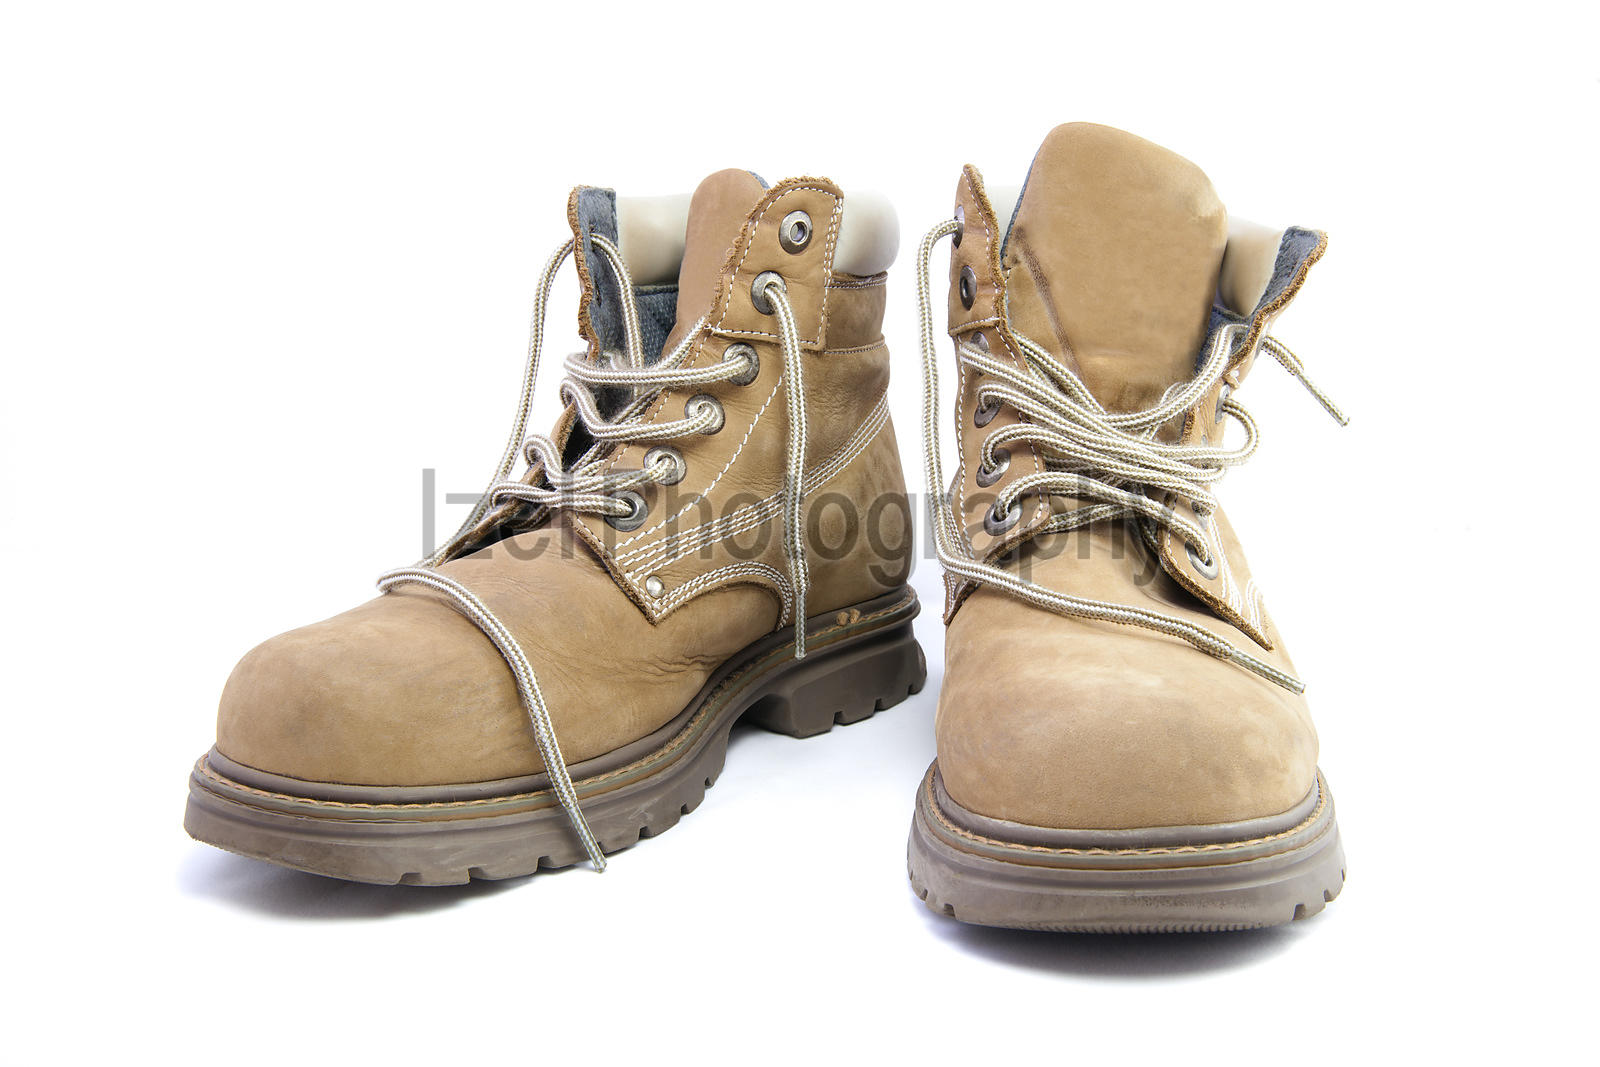 Work Boots - Stock Images